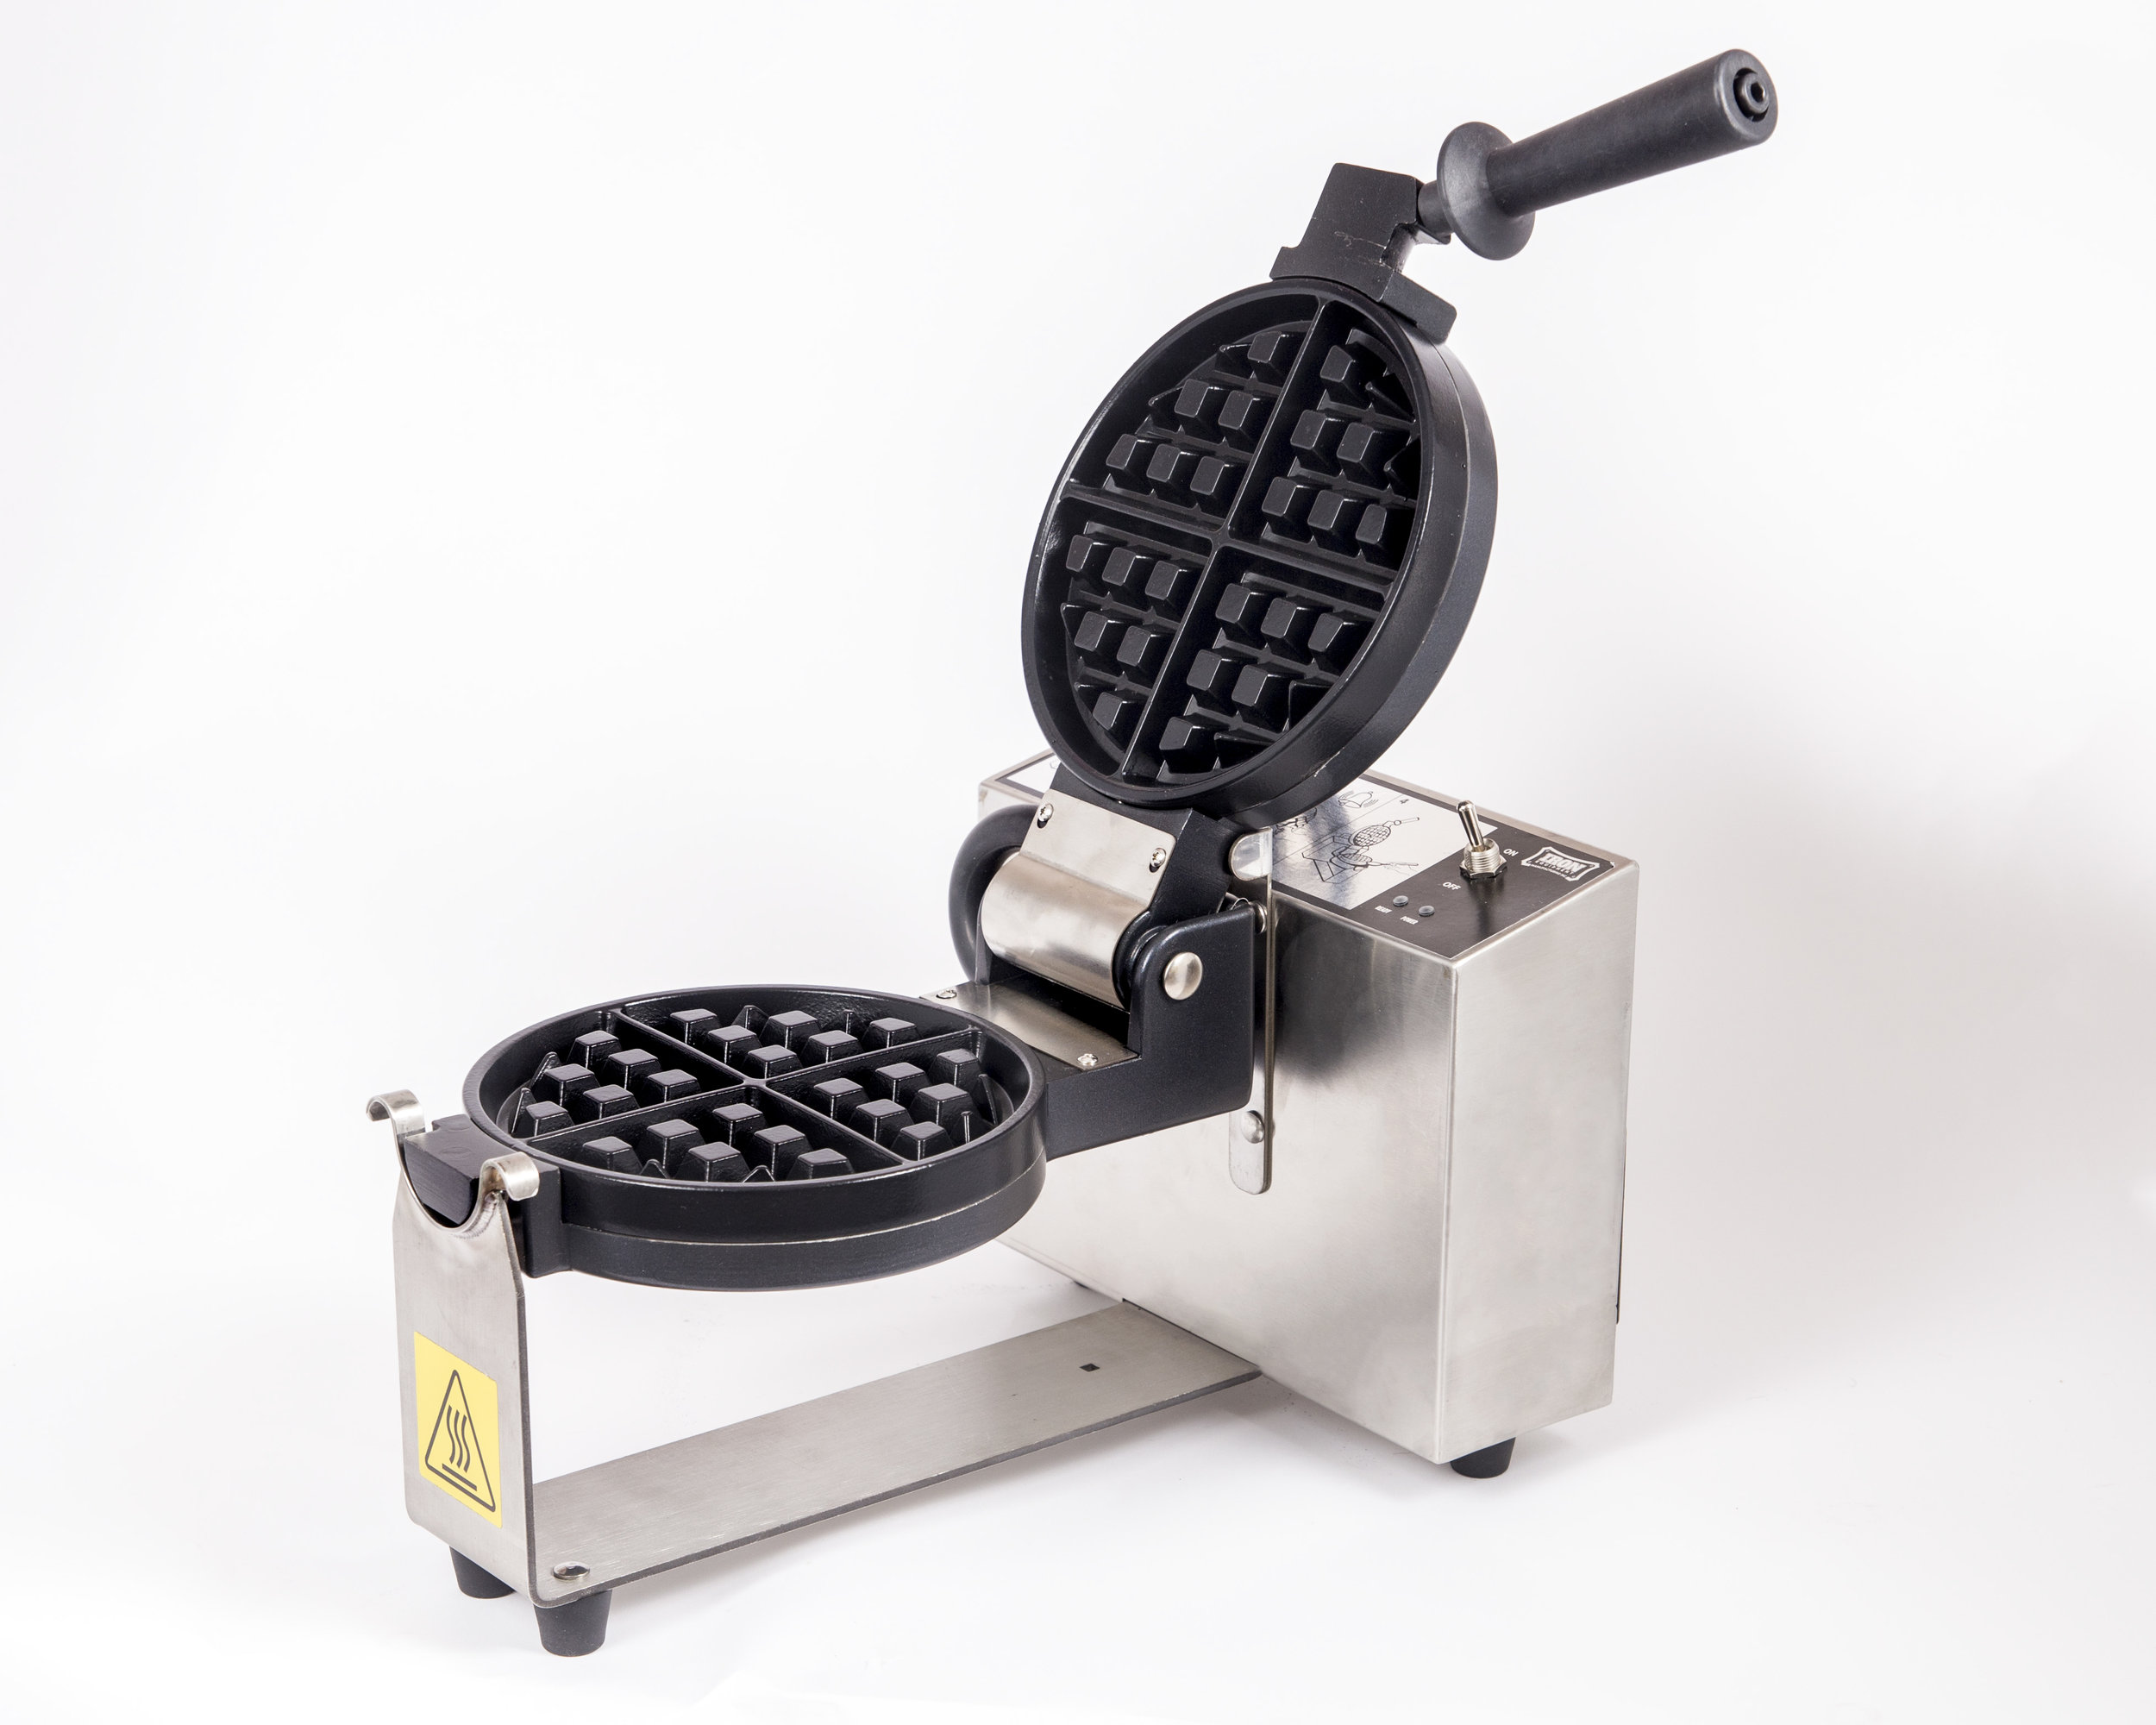 Contact us to inquire about purchasing your own IRON EQUIPMENTS MANUFACTURING INC. IE-1000 series waffle baker.  Found out about the changes to our new model out this summer!!!